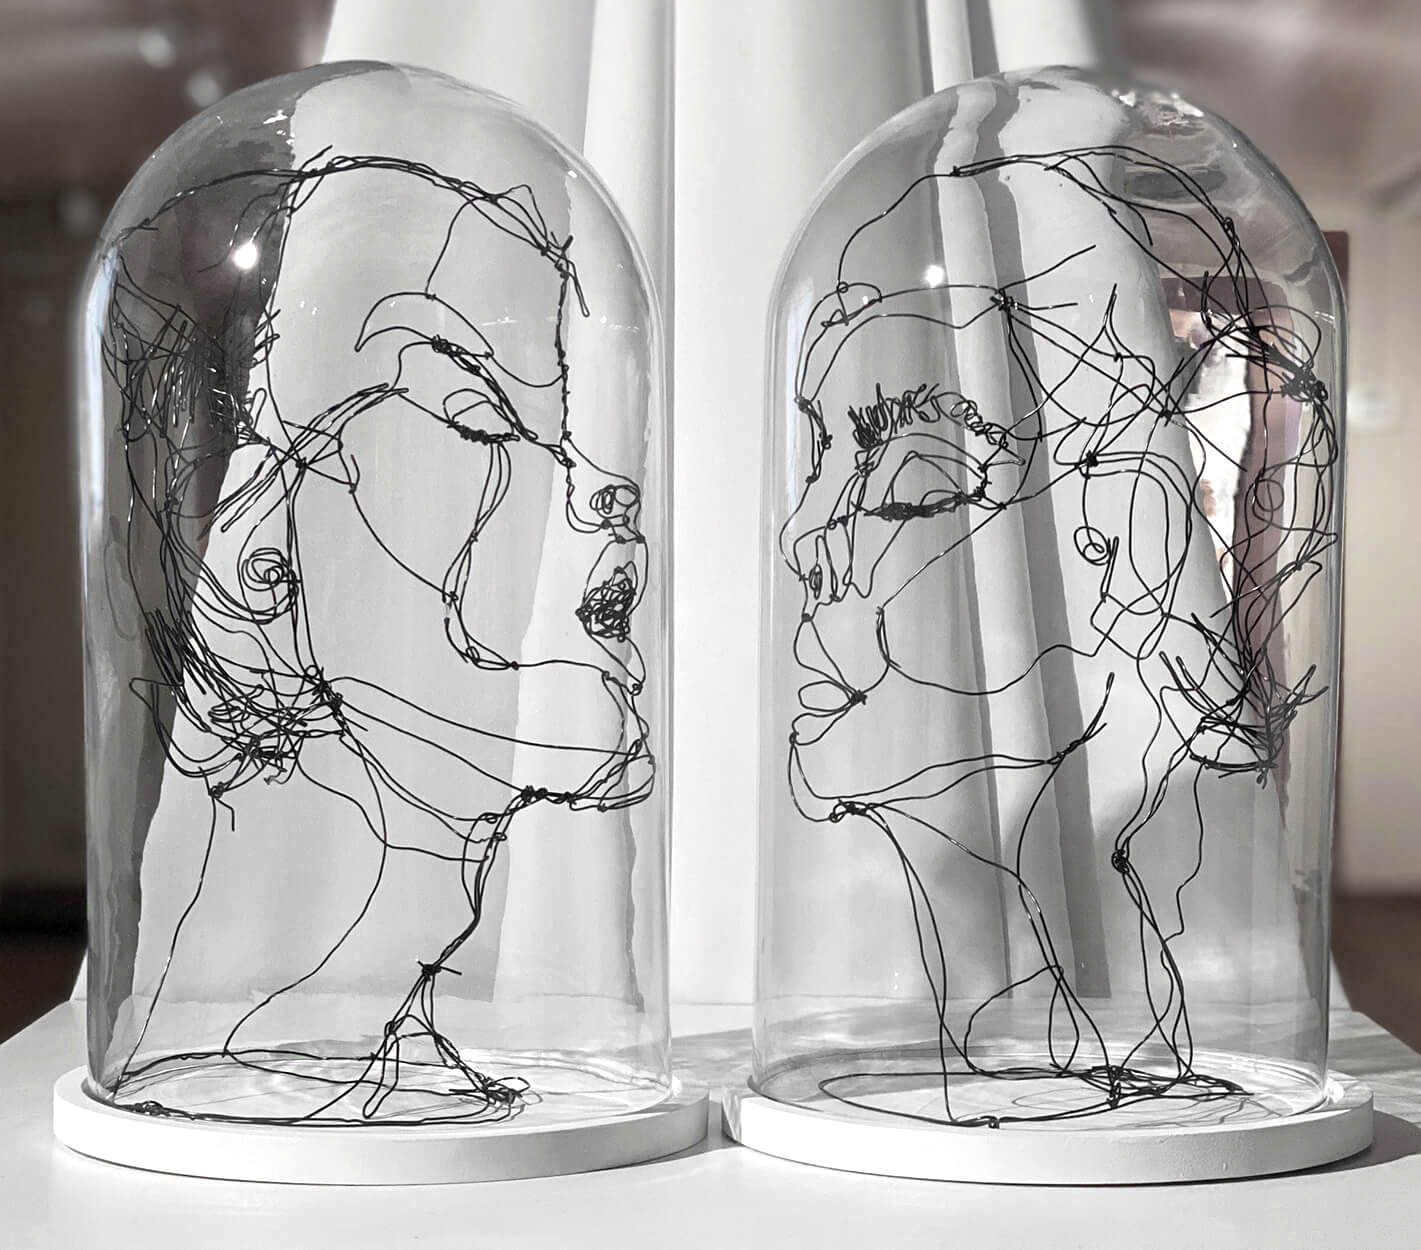 El beso 2020 - the kiss 2020 - wire art sculpture by Angeles Nieto